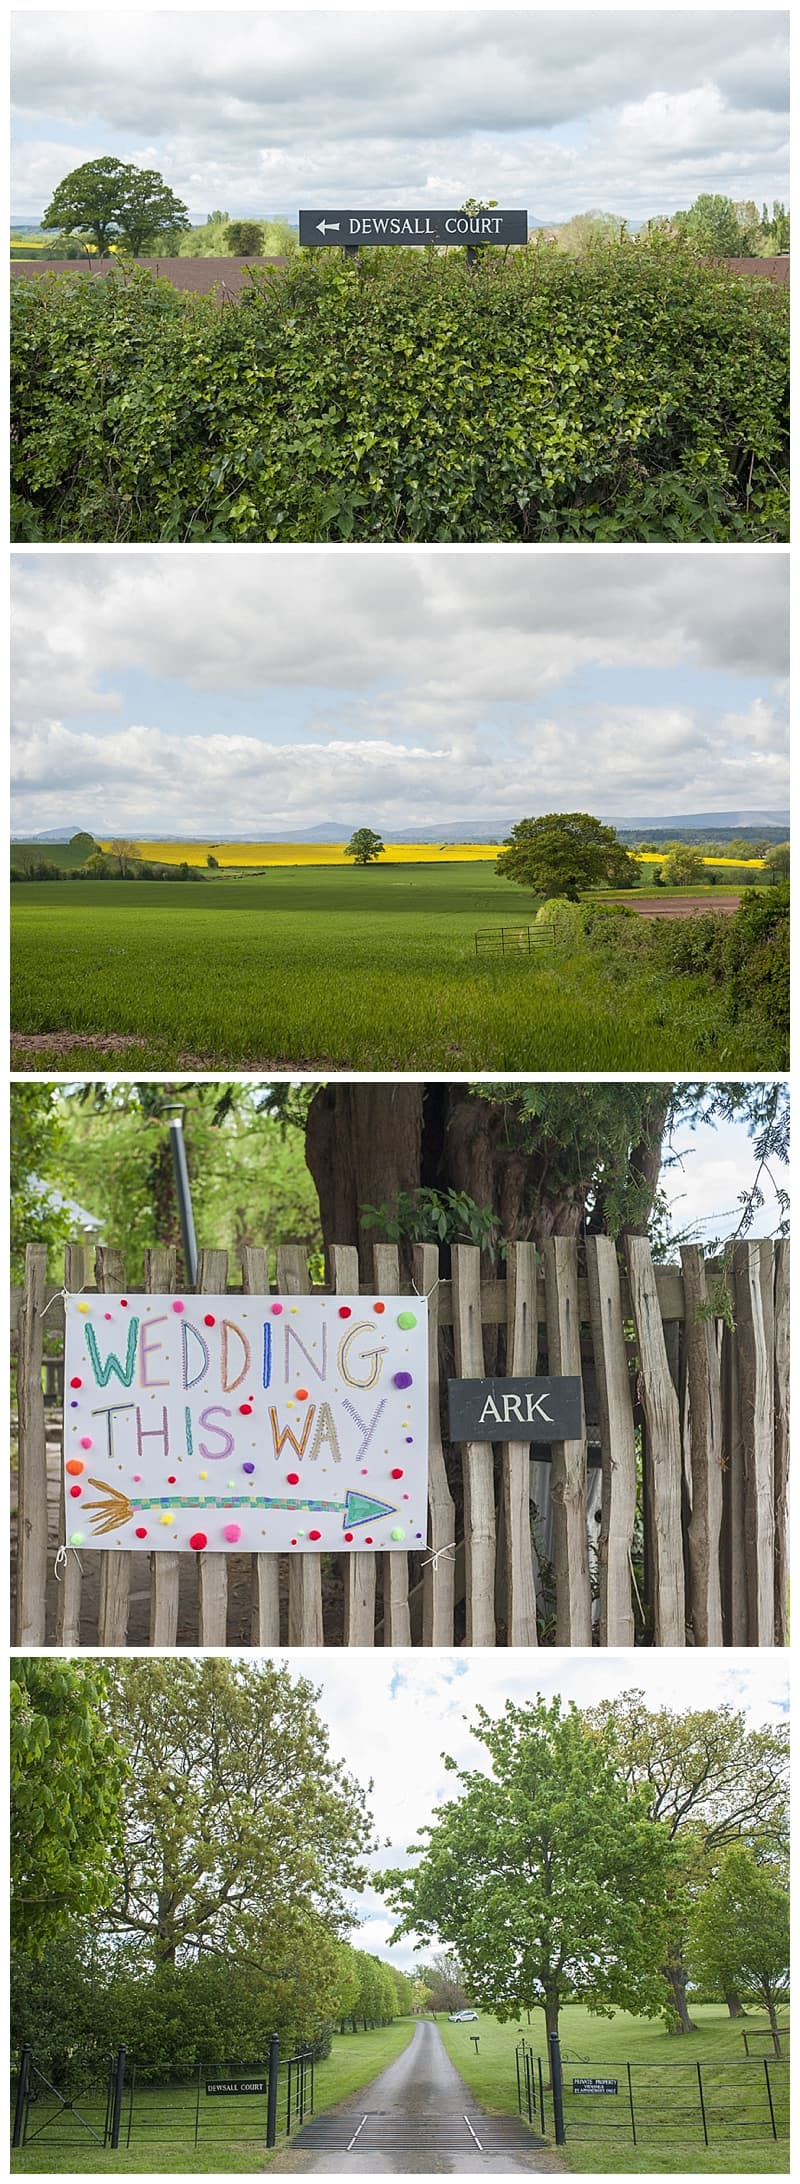 Dewsall Court Wedding, Fran & Alex, Herefordshire Wedding - Benjamin Wetherall Photography ©0001